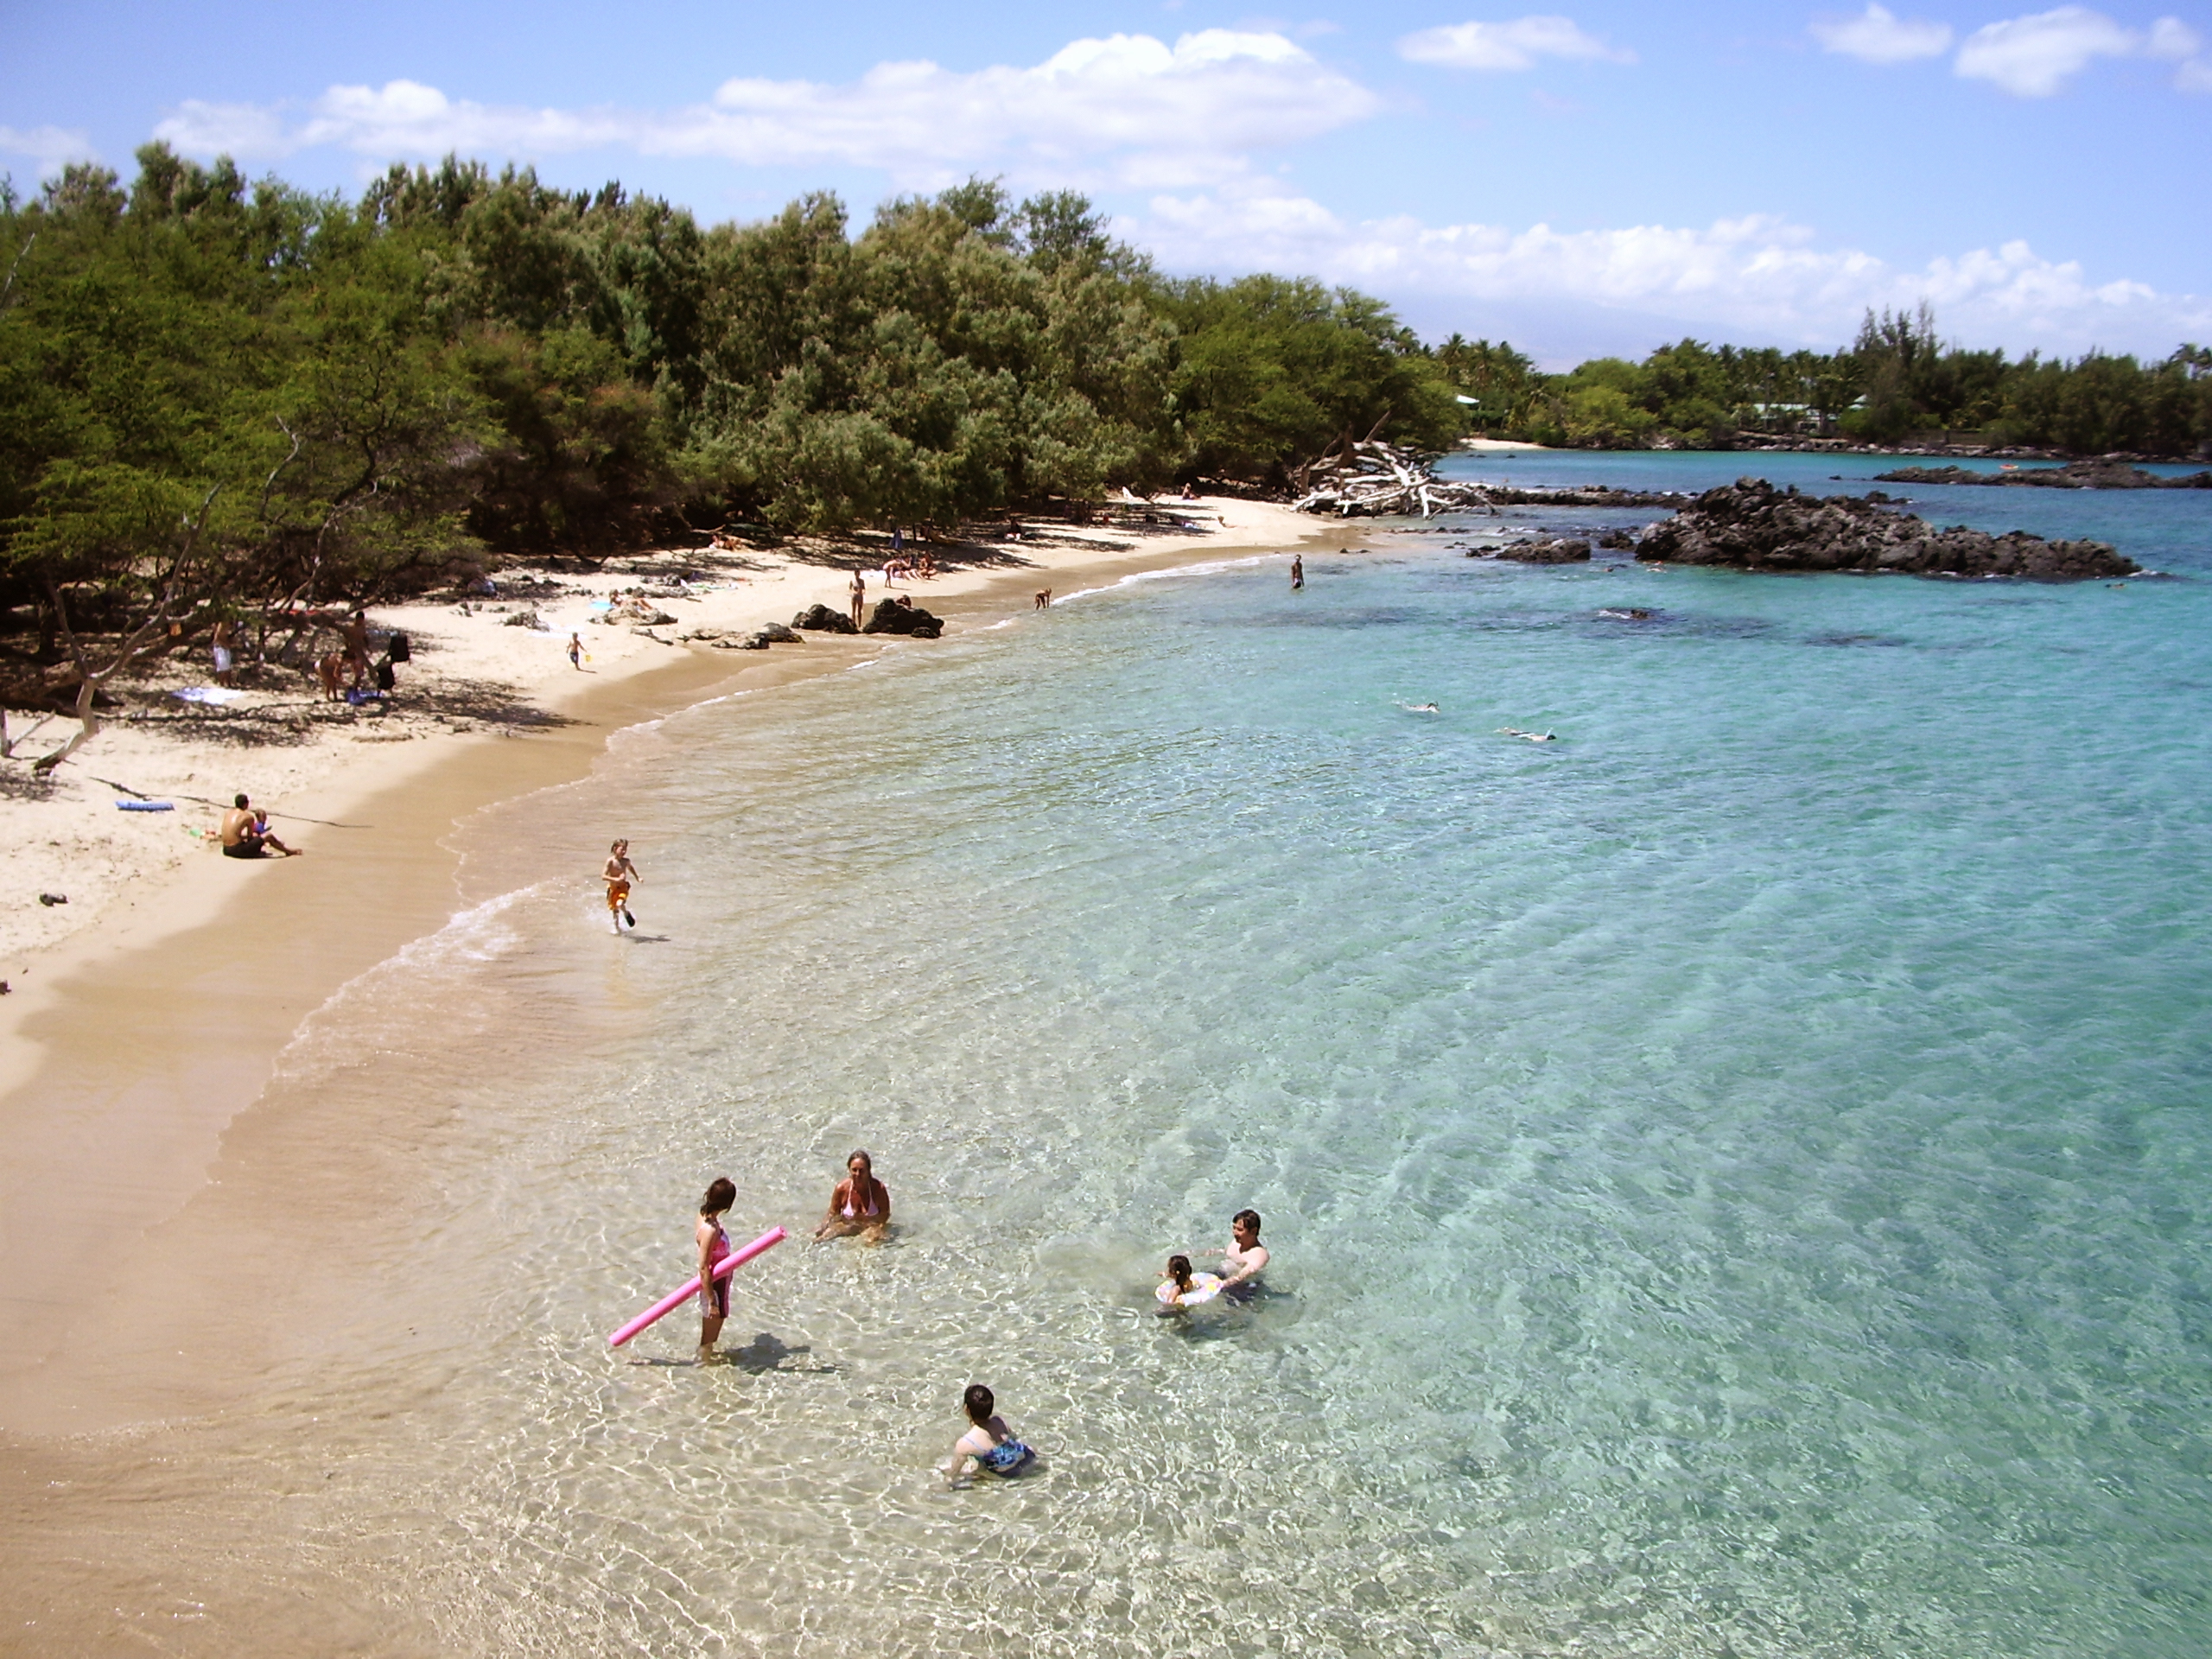 Hawaii Island Snorkeling Tips Part VI  Wilderness Beaches of the Big     Waialea Beach in Kohala is the gateway to many small  secluded secret  beaches on the